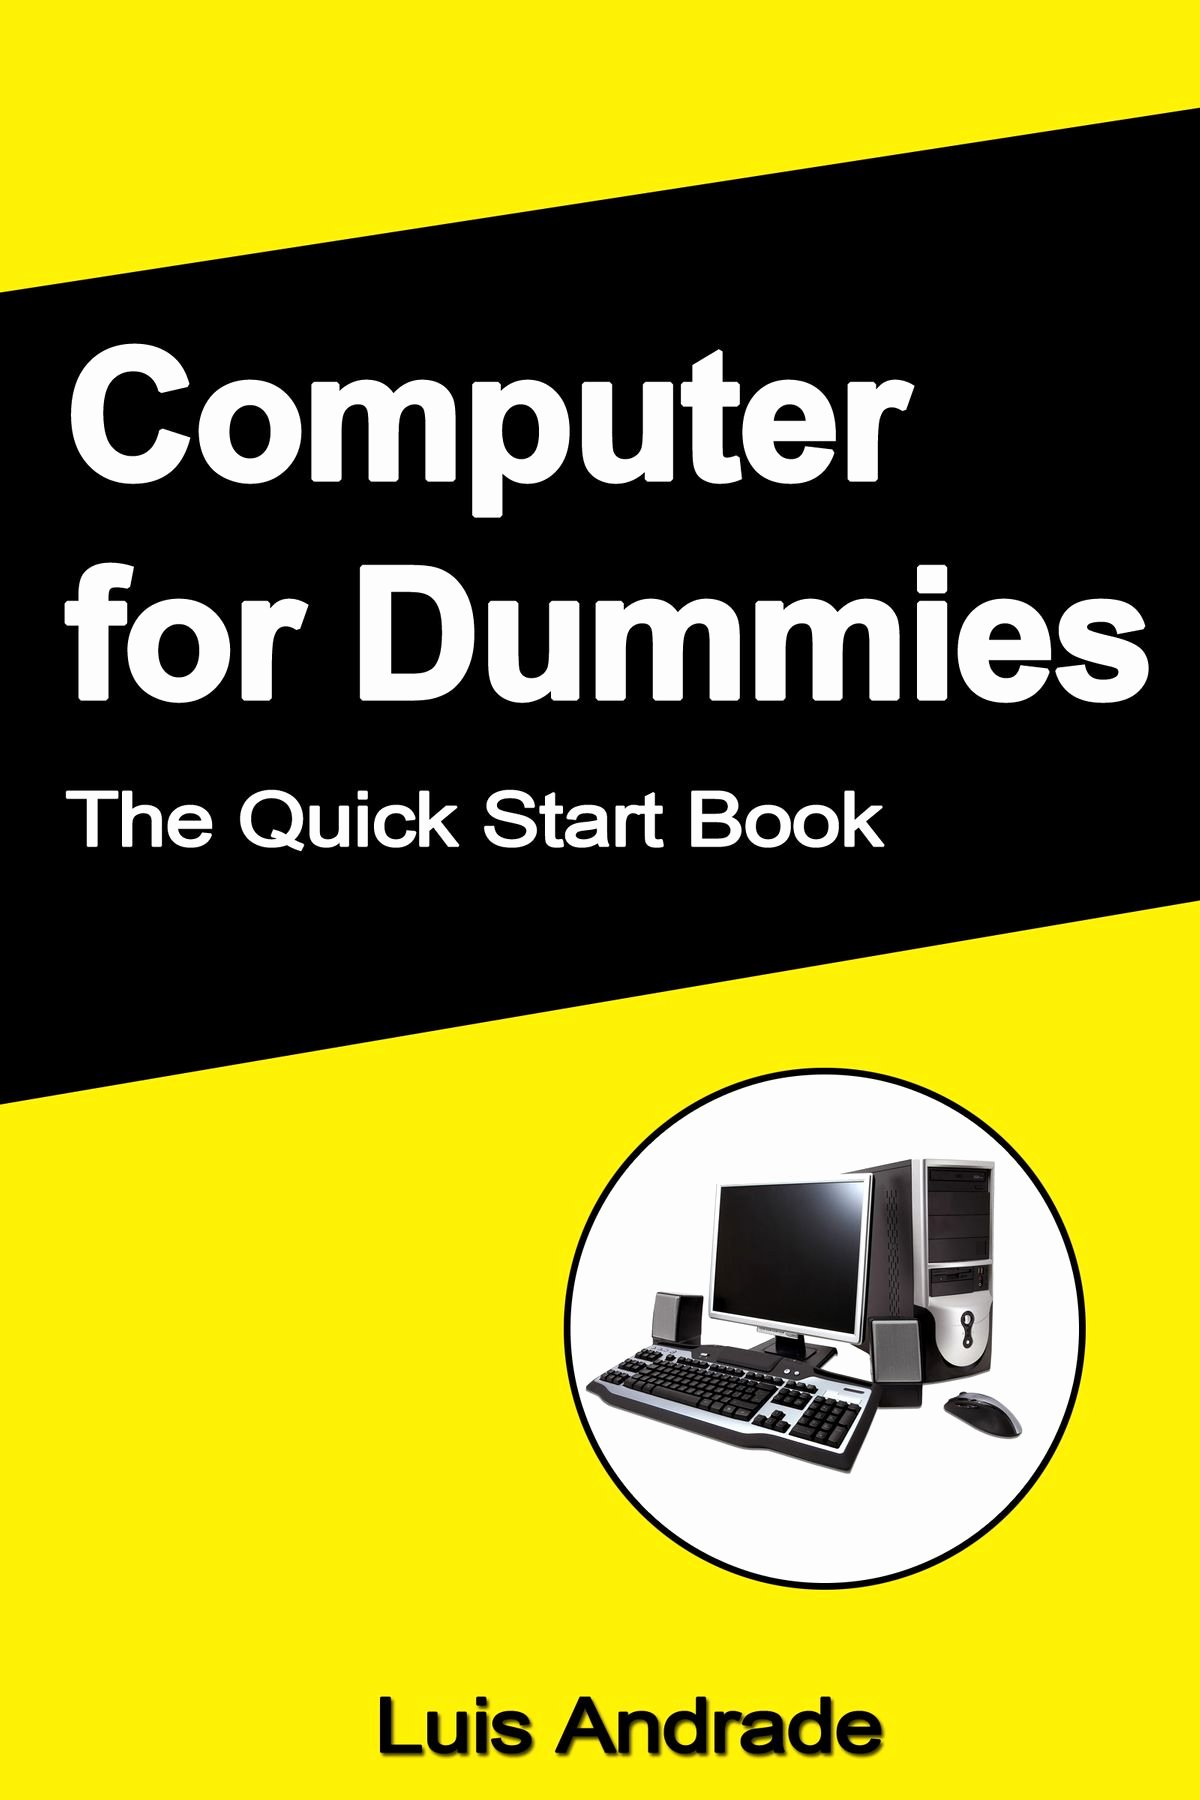 Book for Dummies Template New Puter for Dummies the Quick Start Book Ebook by Luis